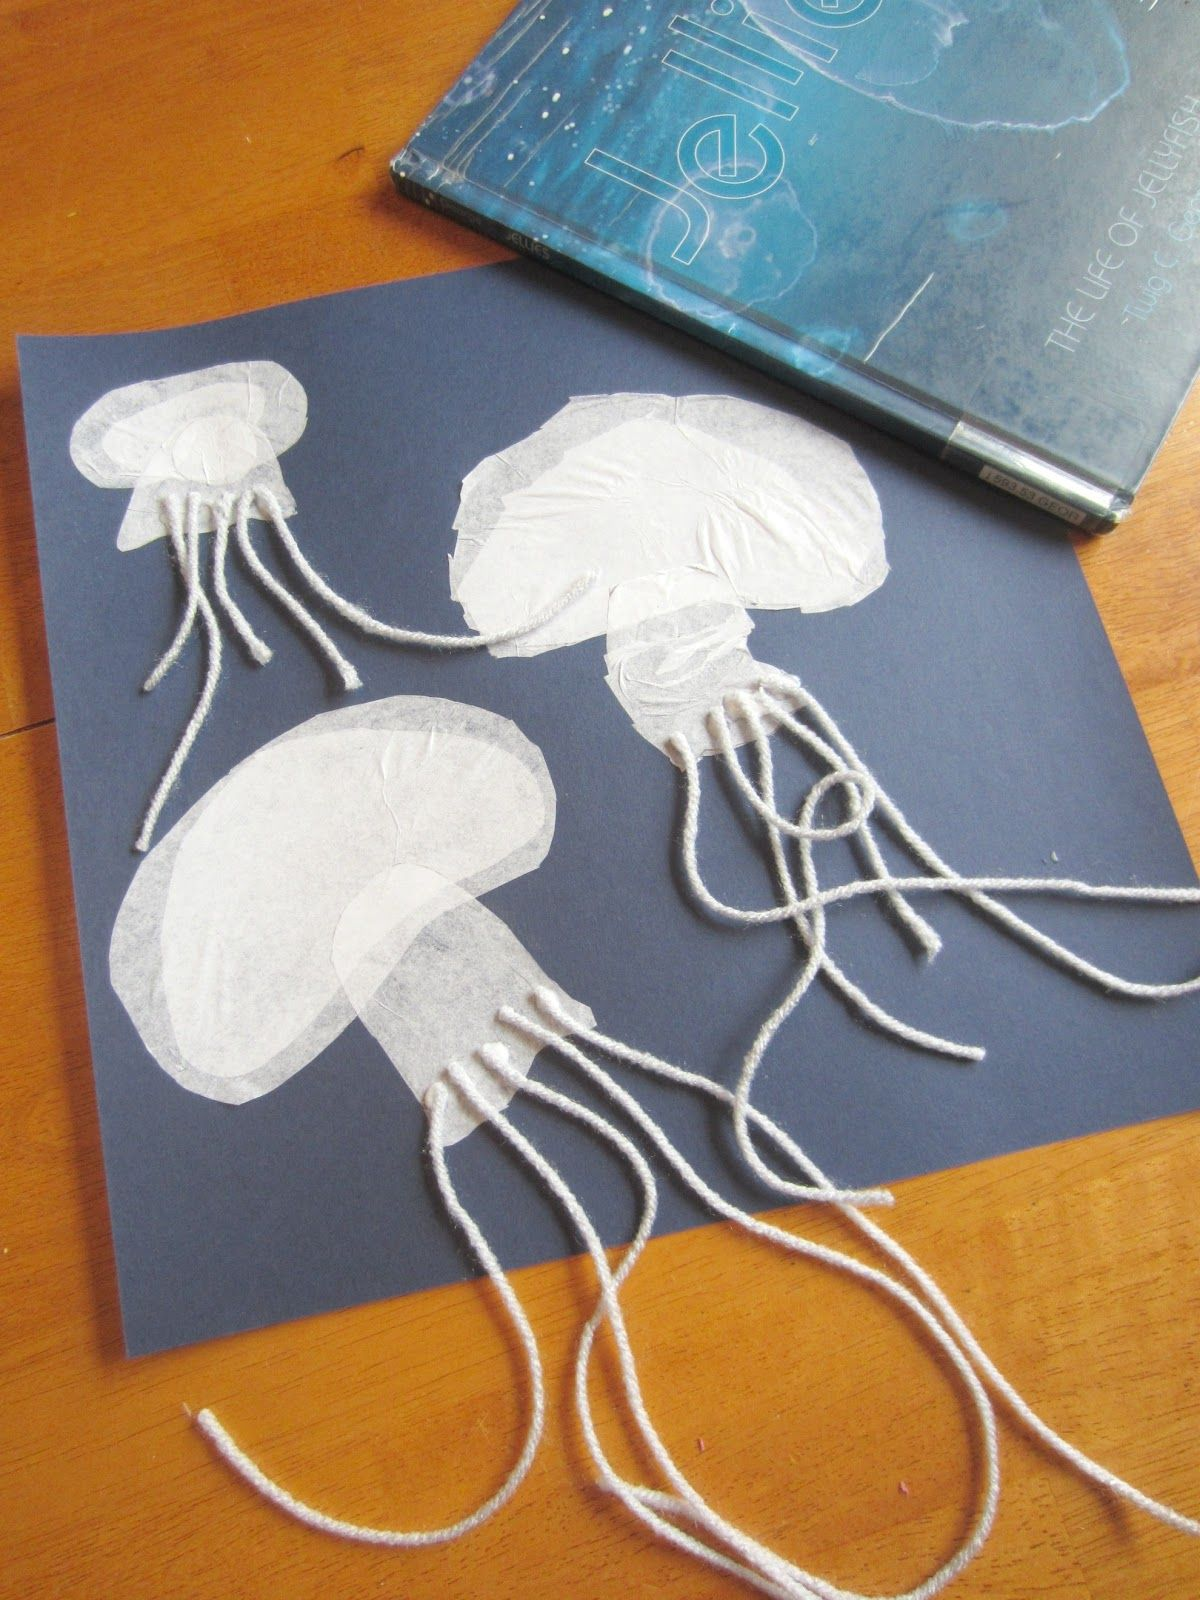 J for Jellyfish Art & Write. Use patterns to cut the bodies of jellies from tissue paper, layer, and glue. Attach yarn for stingers. Download patterns and a writing page at Relentlessly Fun, Deceptively Educational.